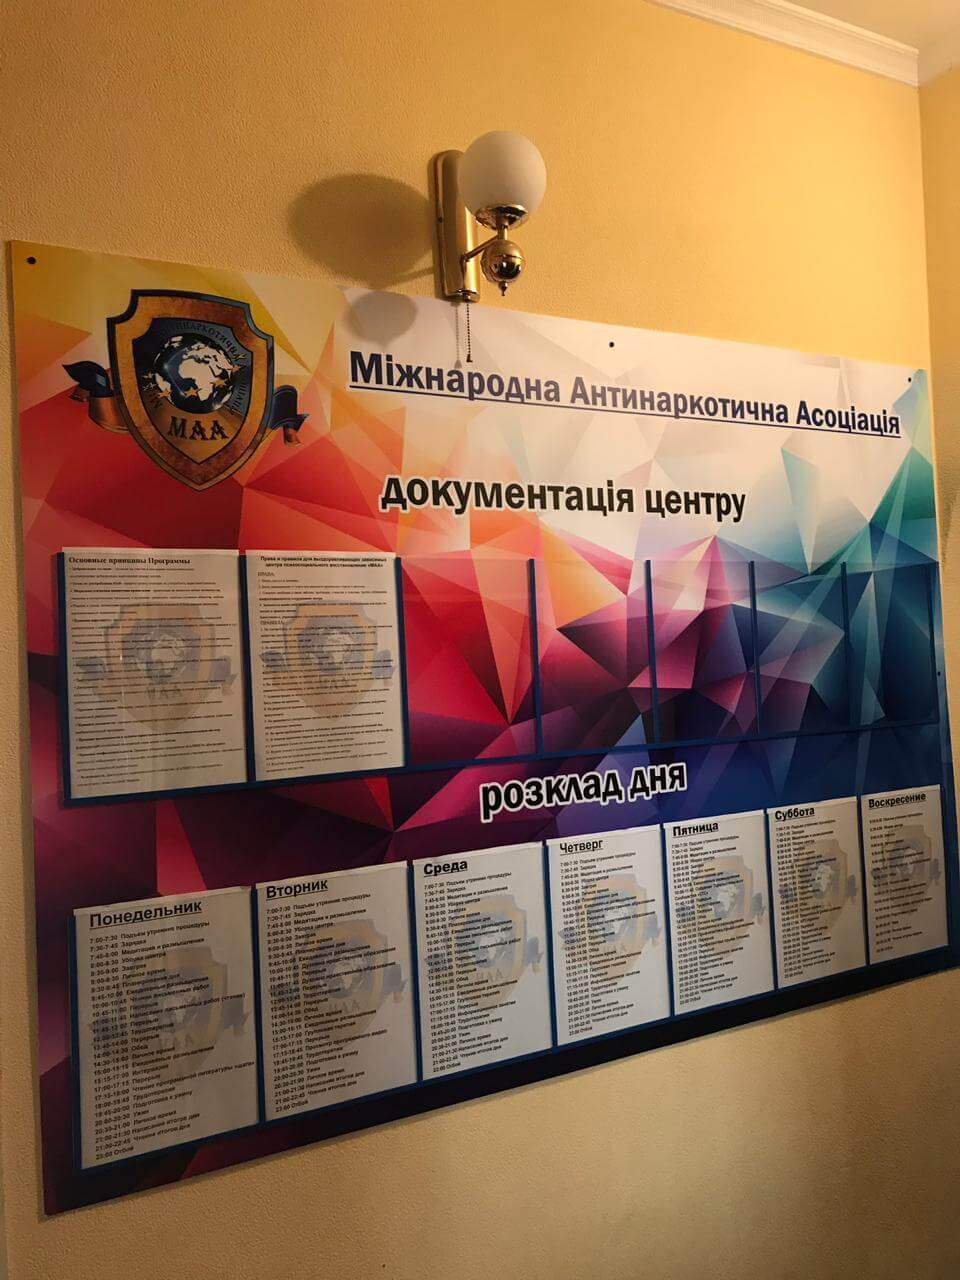 Drug addiction treatment in Zhitomir